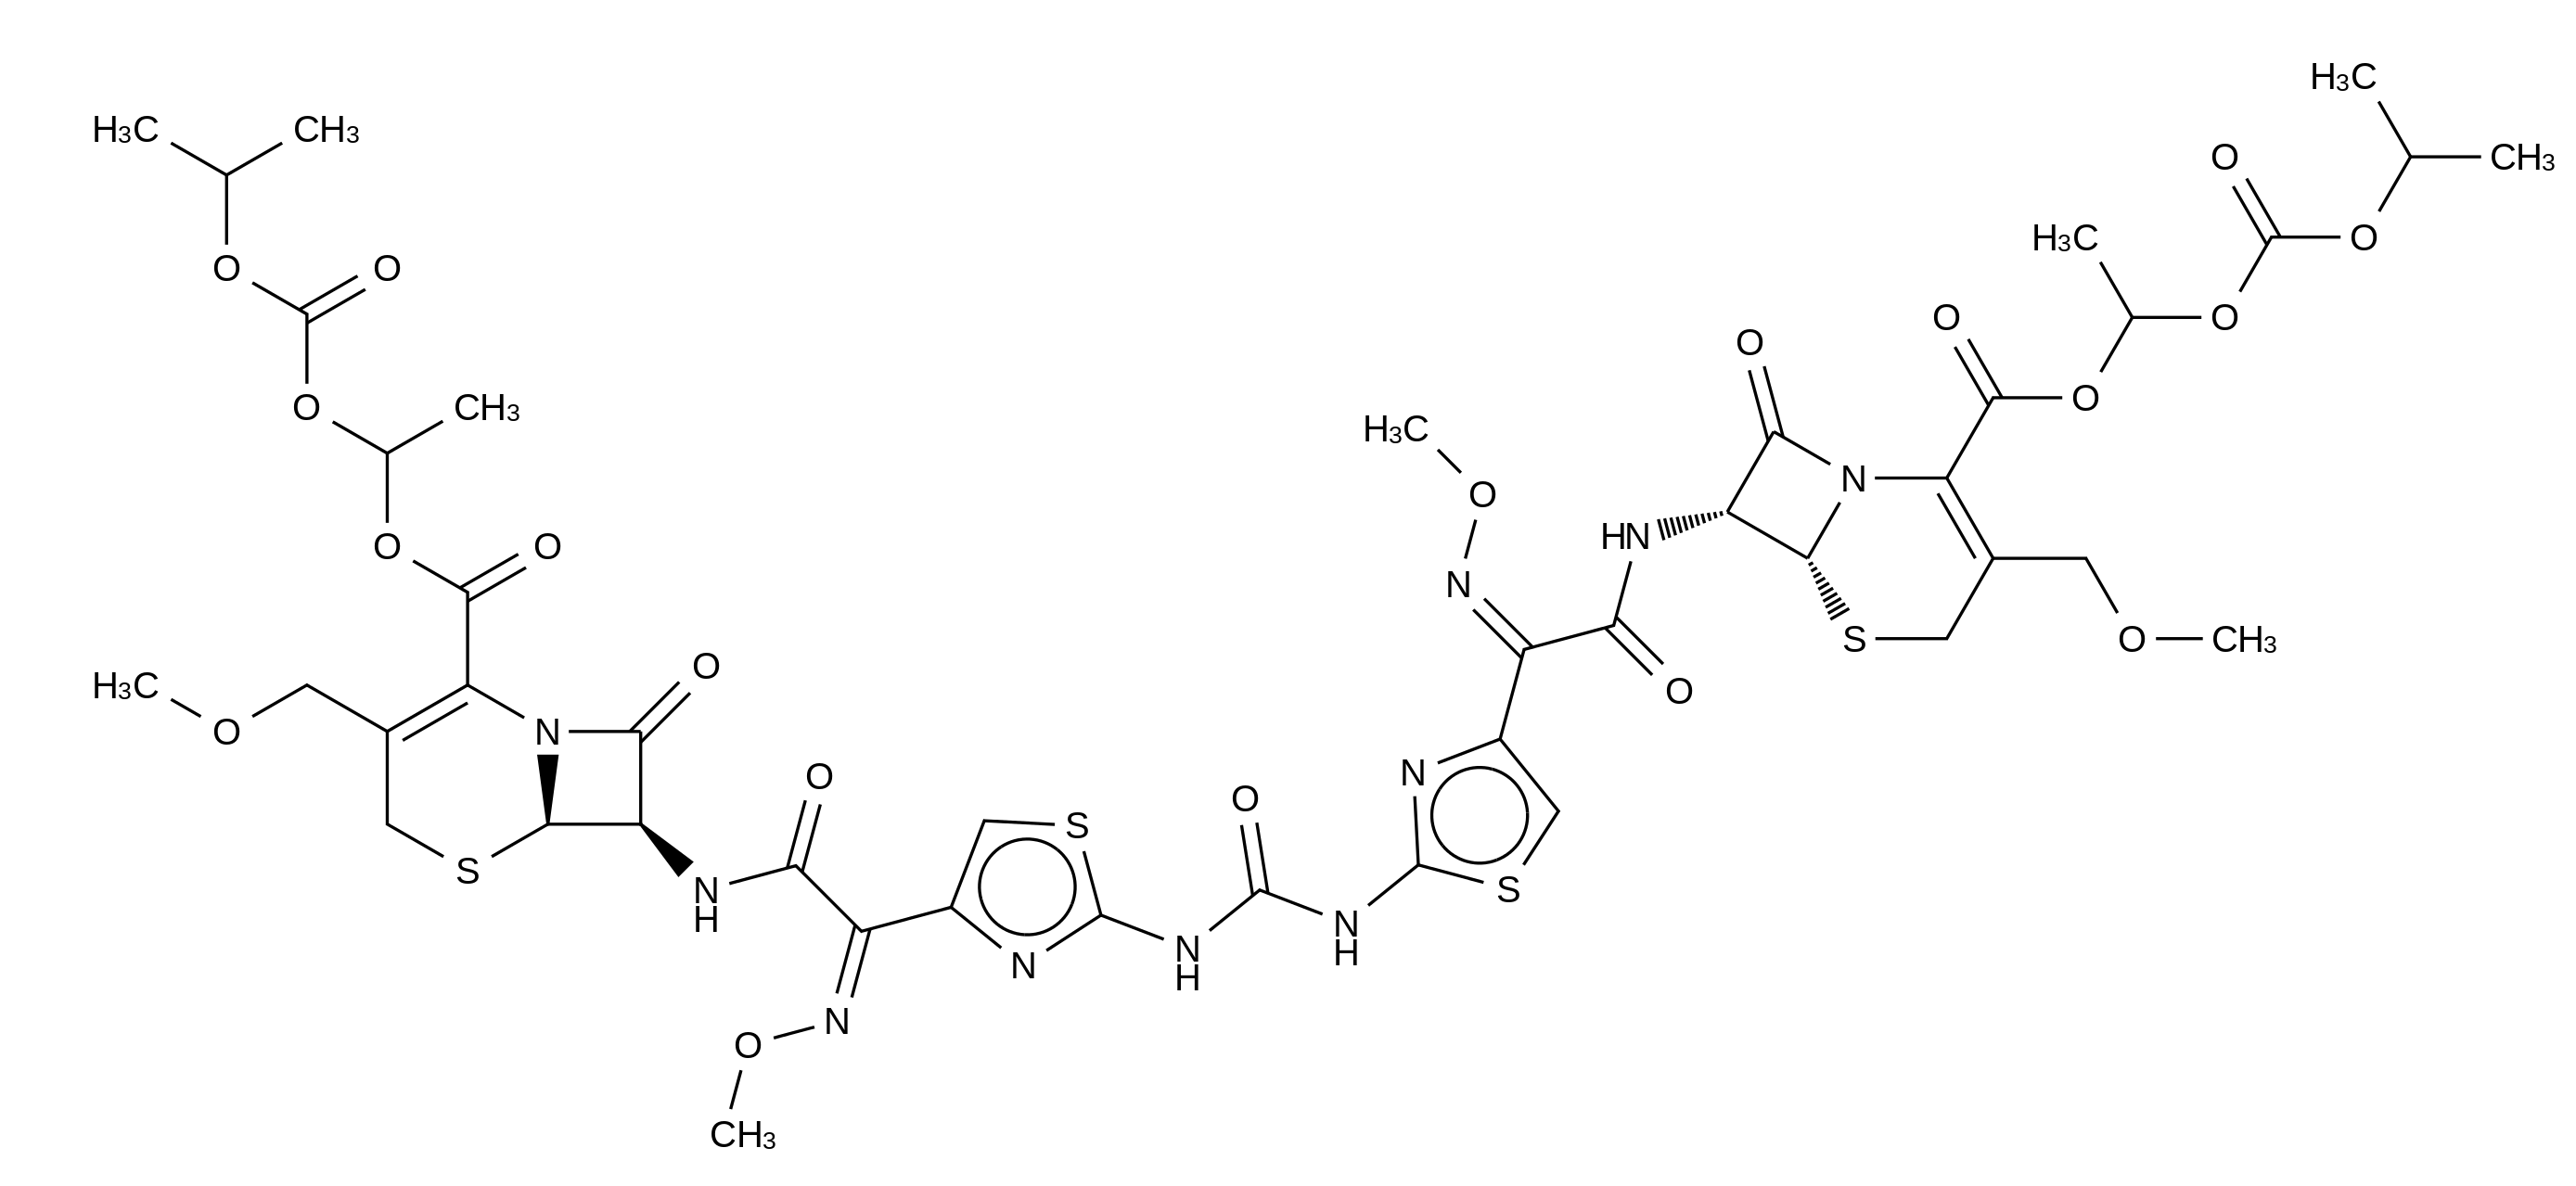 Cefpodoxime Proxetil Dimer Impurity 1